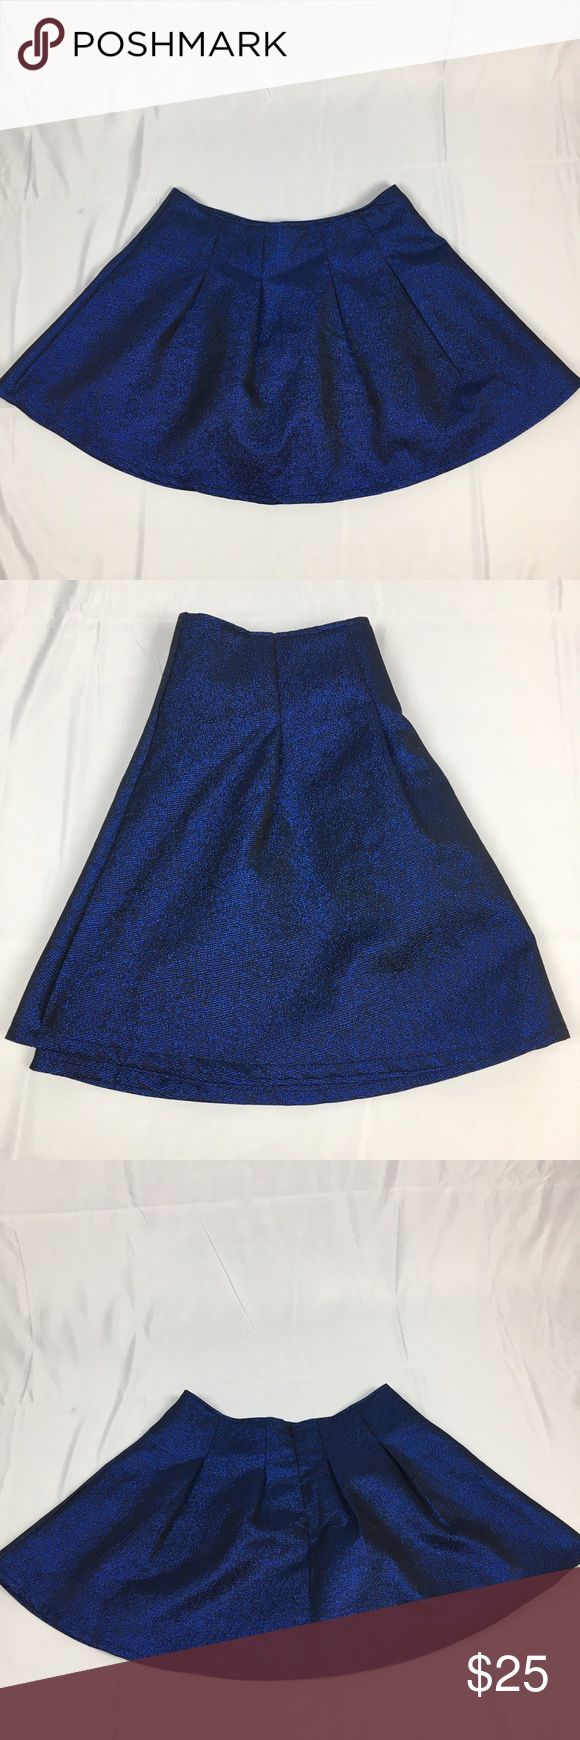 Francesca's Harper Shiny Blue Pleated A-line Skirt Fun and glamorous shimmering blue Pleated a-line skirt. Like-new condition. Size L. Approx measurements: waist - 32 inches and length is 17 inches. Perfect night out Skirt Francesca's Collections Skirts A-Line or Full